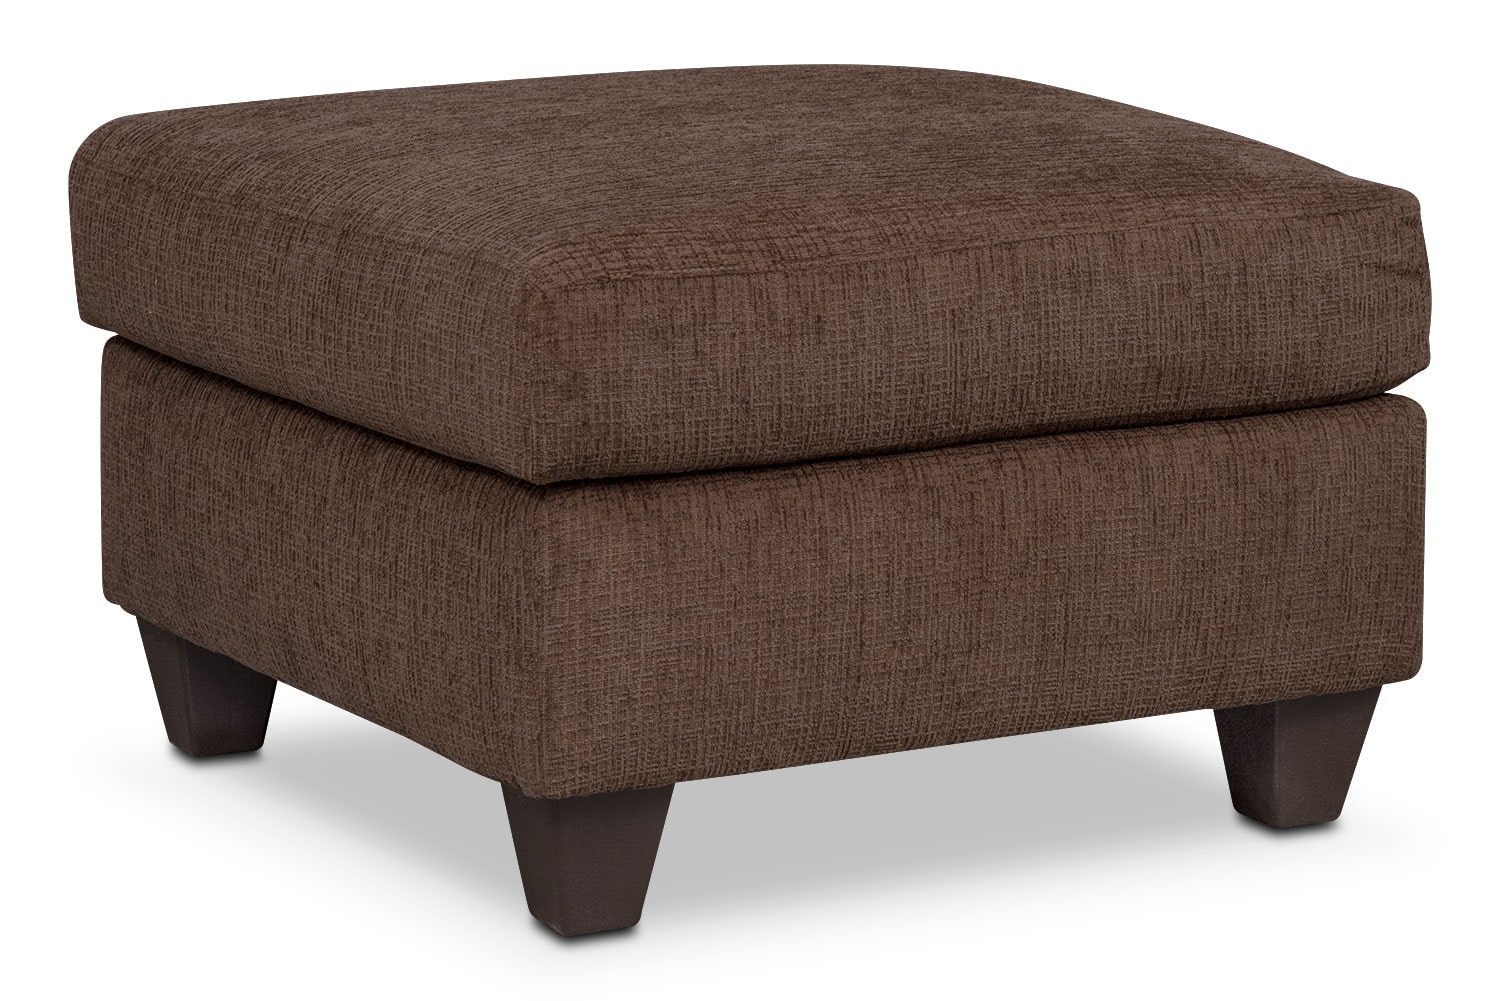 Living Room Furniture - Juno Ottoman - Chocolate